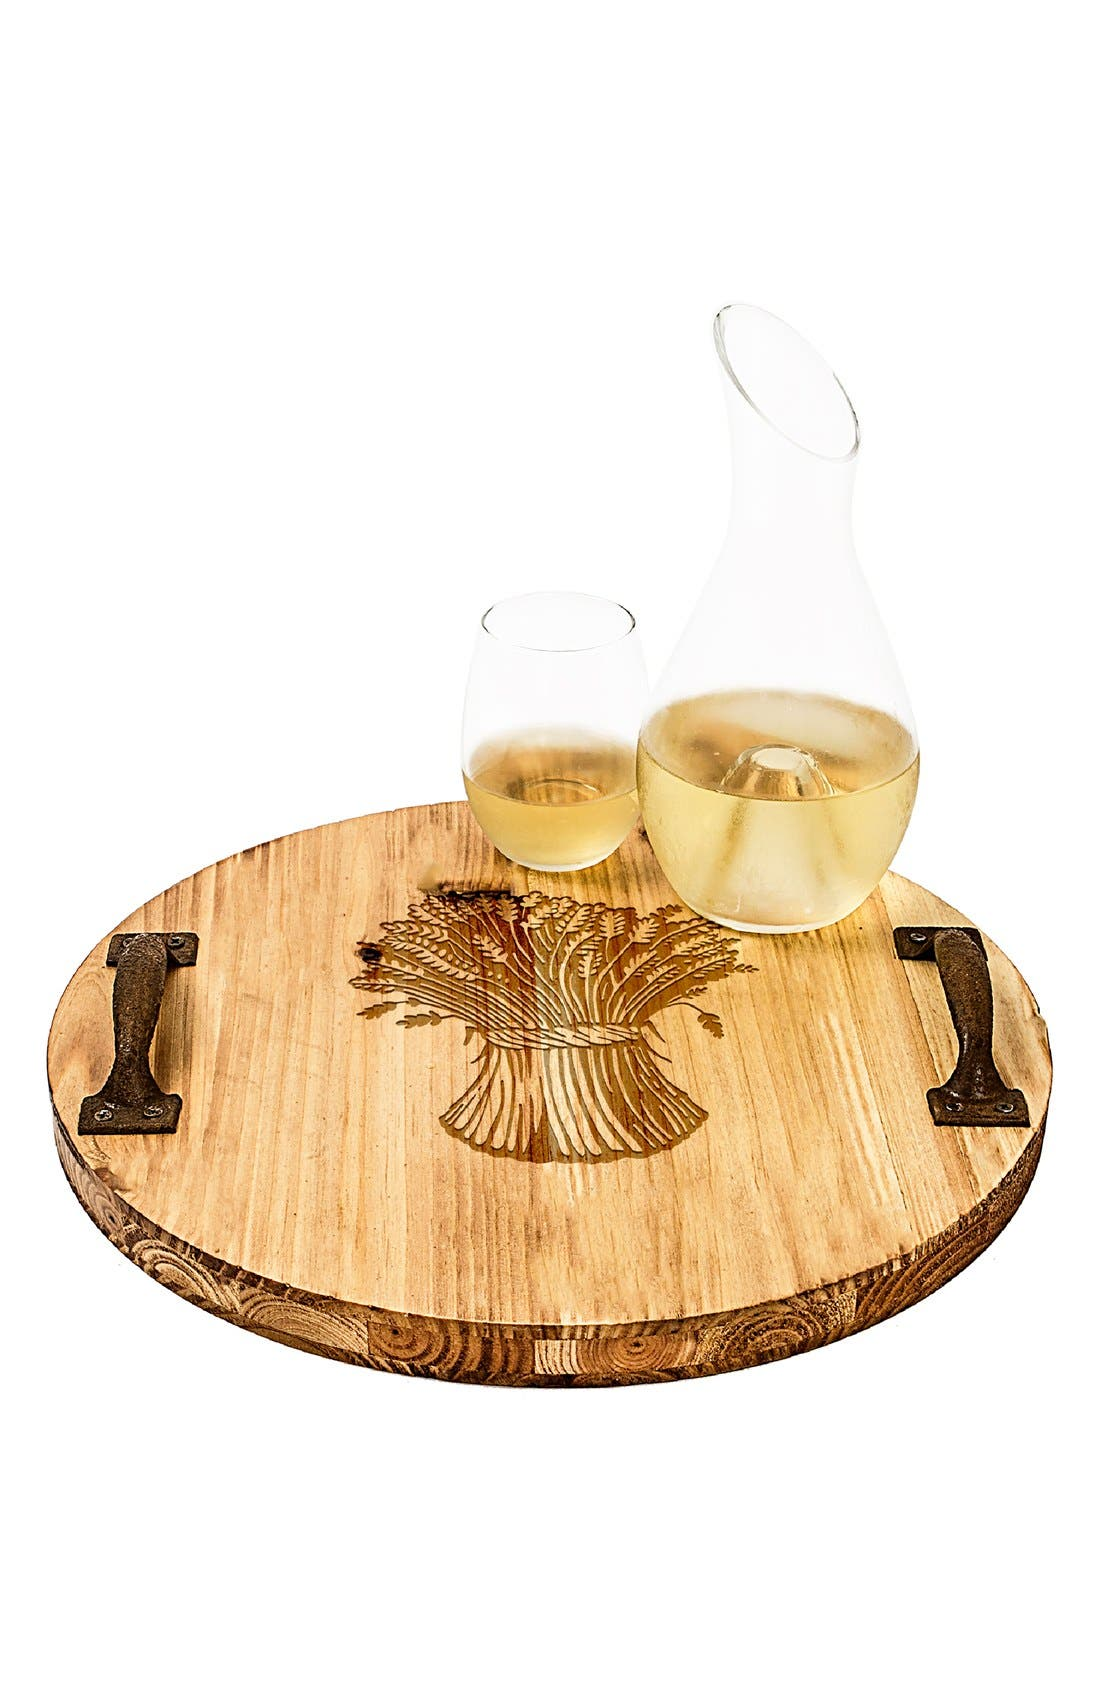 'Wheat Stalk' Rustic Wooden Tray,                         Main,                         color,